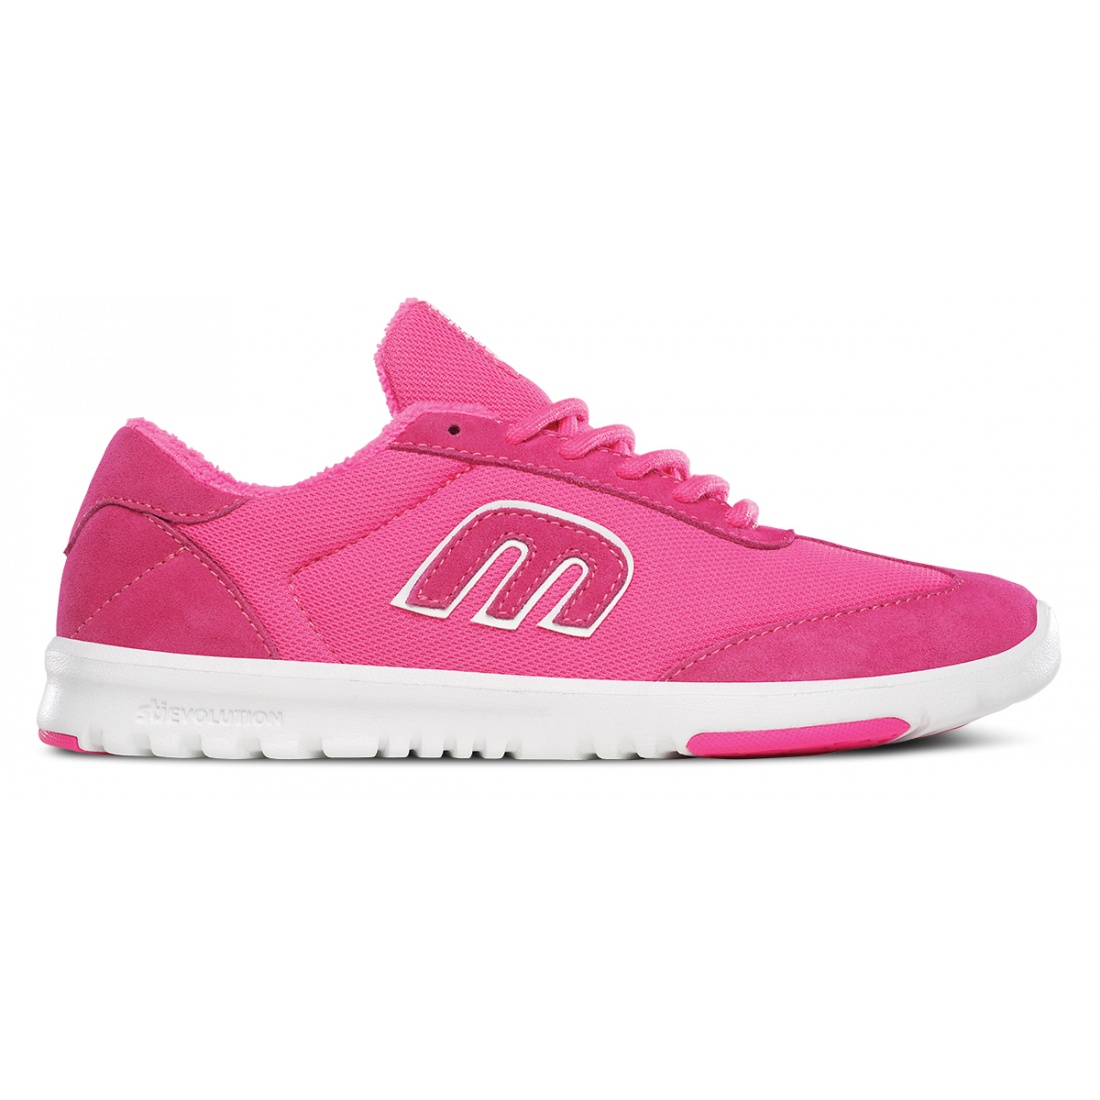 ETN-Lo-cut Pink/White/Pink Girls Shoes